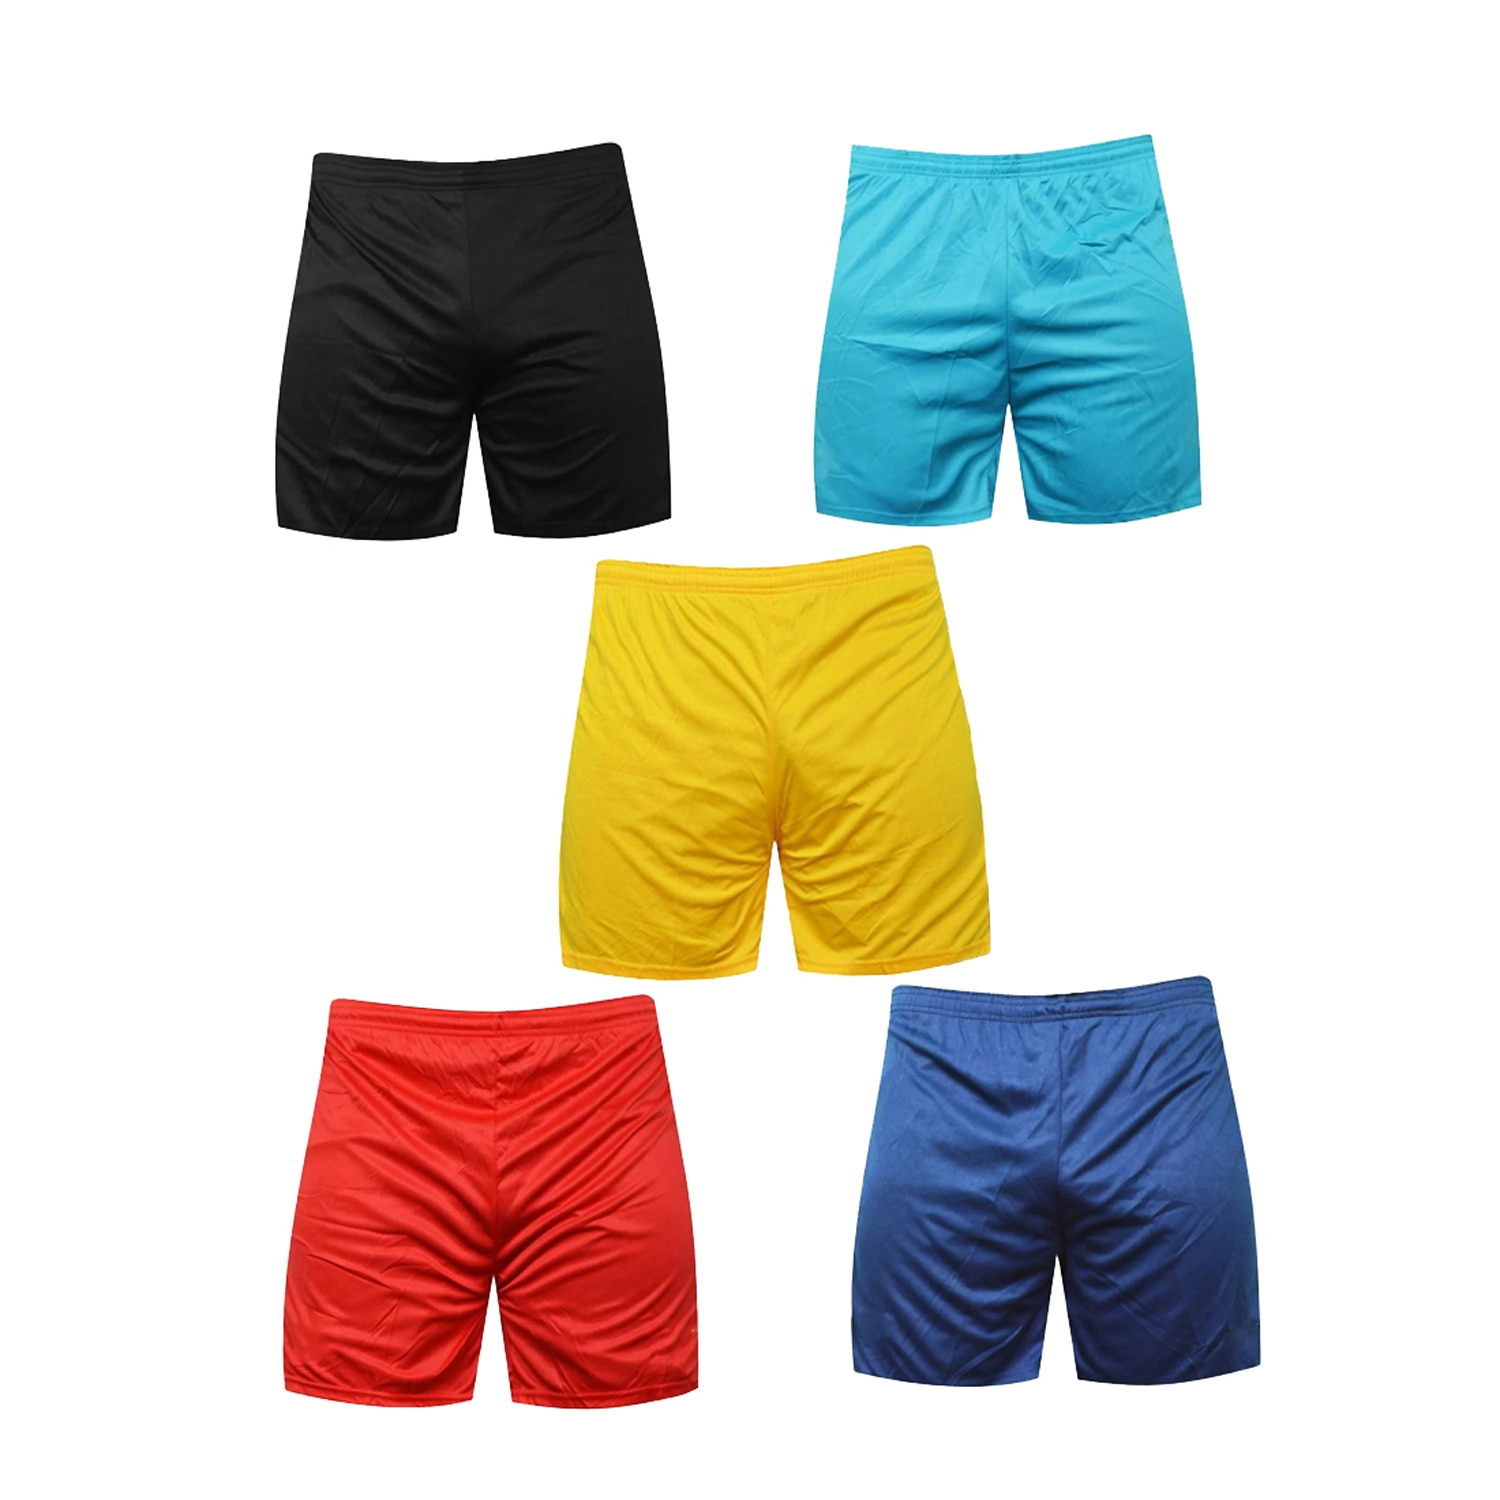 Mj Store Present Polyster Dry-Fit Men's Lounge, Beach, Bermuda, Casual, Sports, Night wear, Cycling Shorts , Running Shorts , Half Pant , Football Shorts , Swimming Shorts Combo Pack Of 5